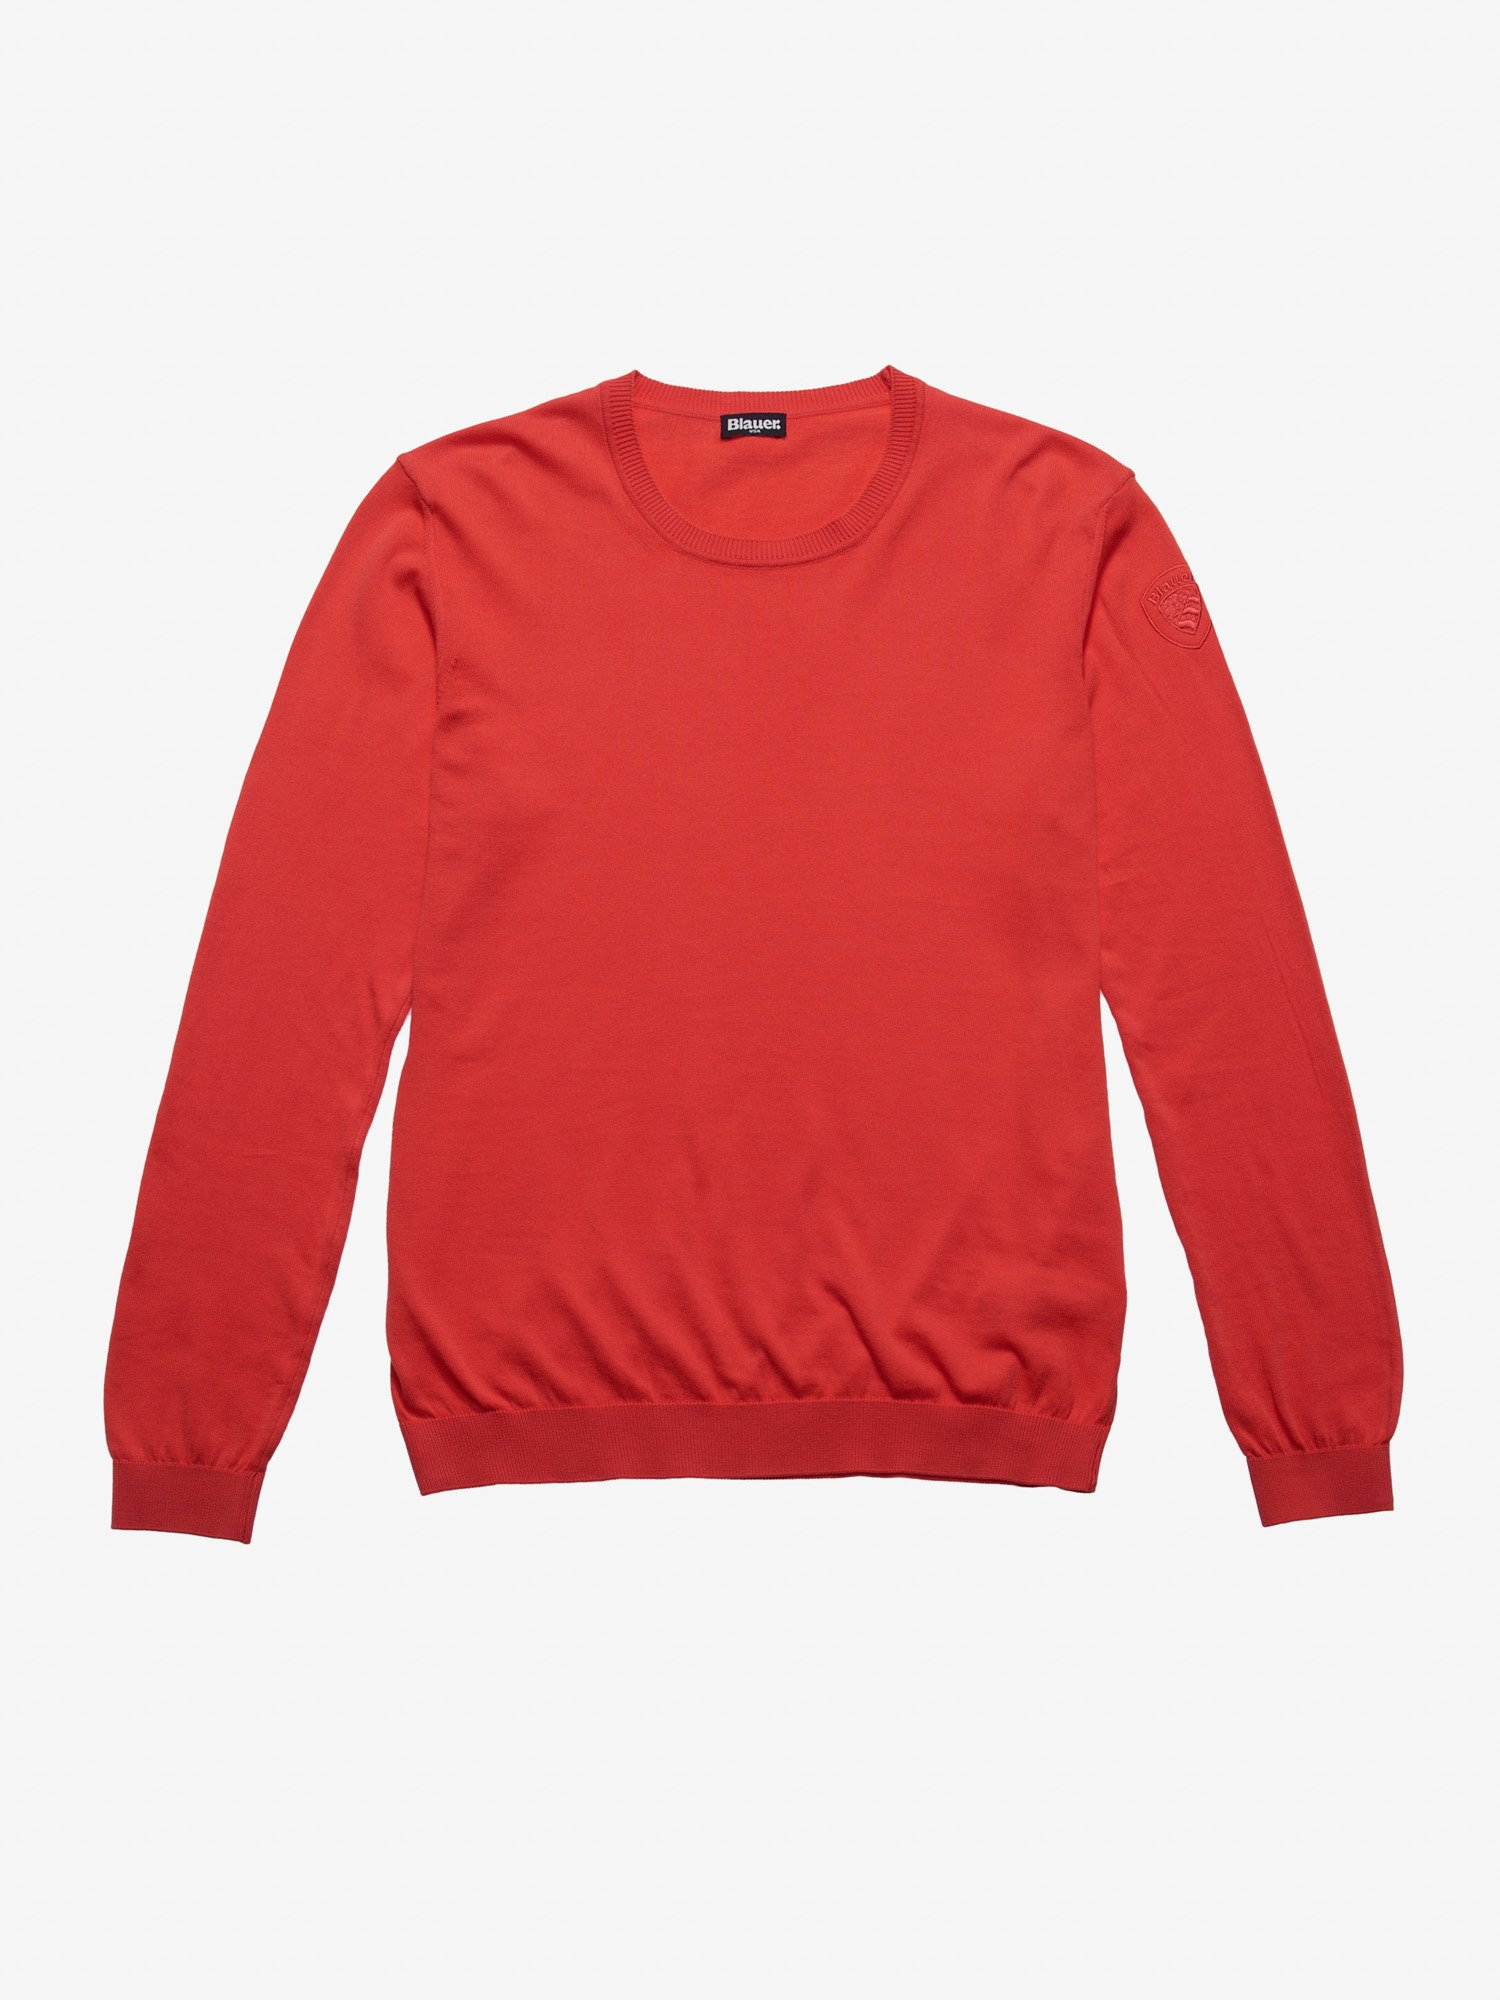 BLAUER CREW NECK SWEATER - Blauer